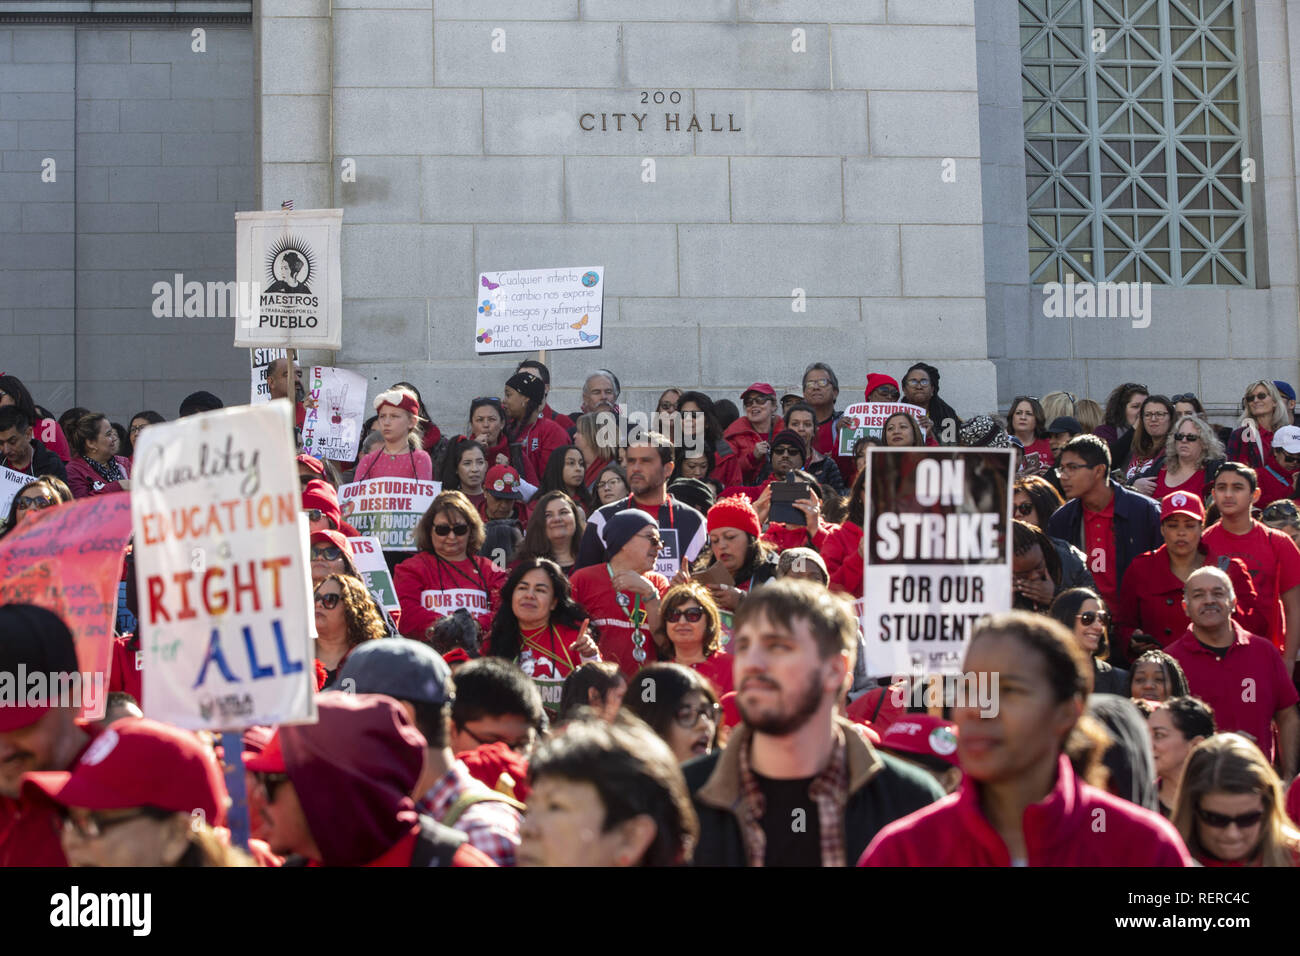 Los Angeles, California, USA. 22nd Jan, 2019. UTLA members and teachers celebrate the announcement of an agreement to end a nine-day LAUSD teachers strike at a downtown LA rally at city hall Tuesday, Jan. 22, 2019. Credit: Allison Zaucha/ZUMA Wire/Alamy Live News - Stock Image